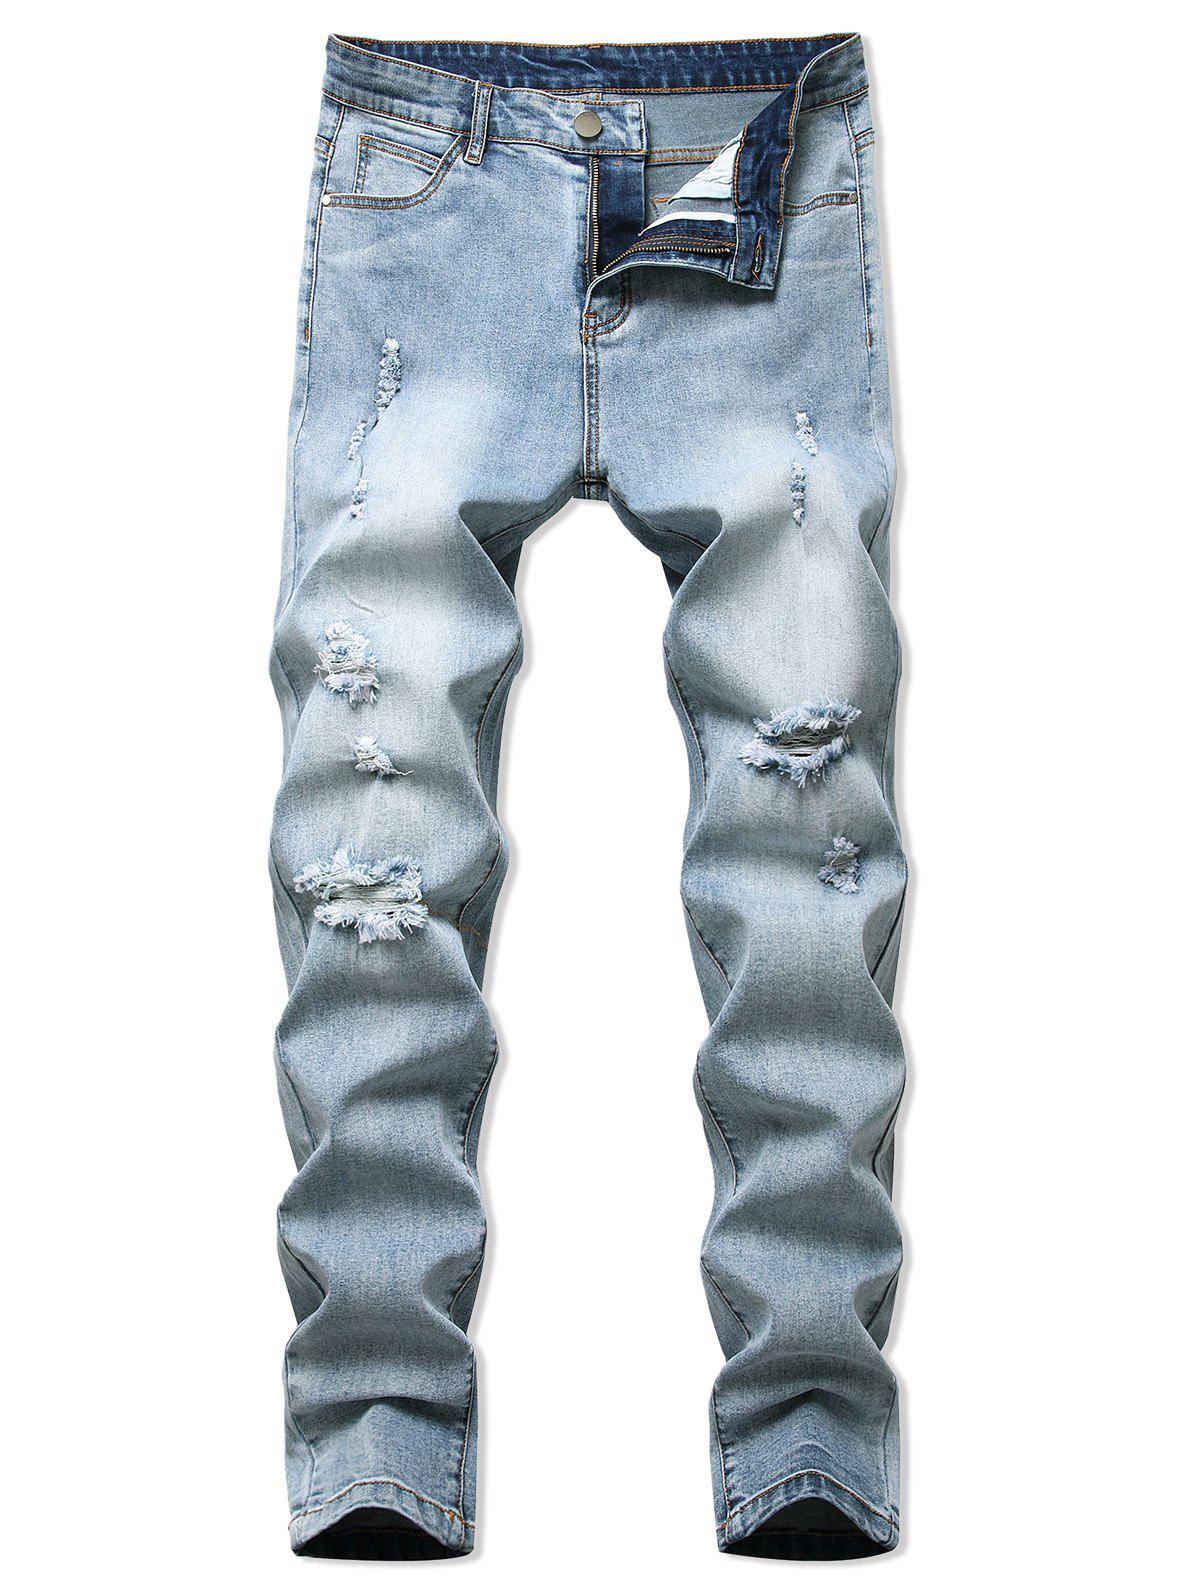 Destroyed Light Wash Tapered Casual Jeans - LIGHT BLUE 40